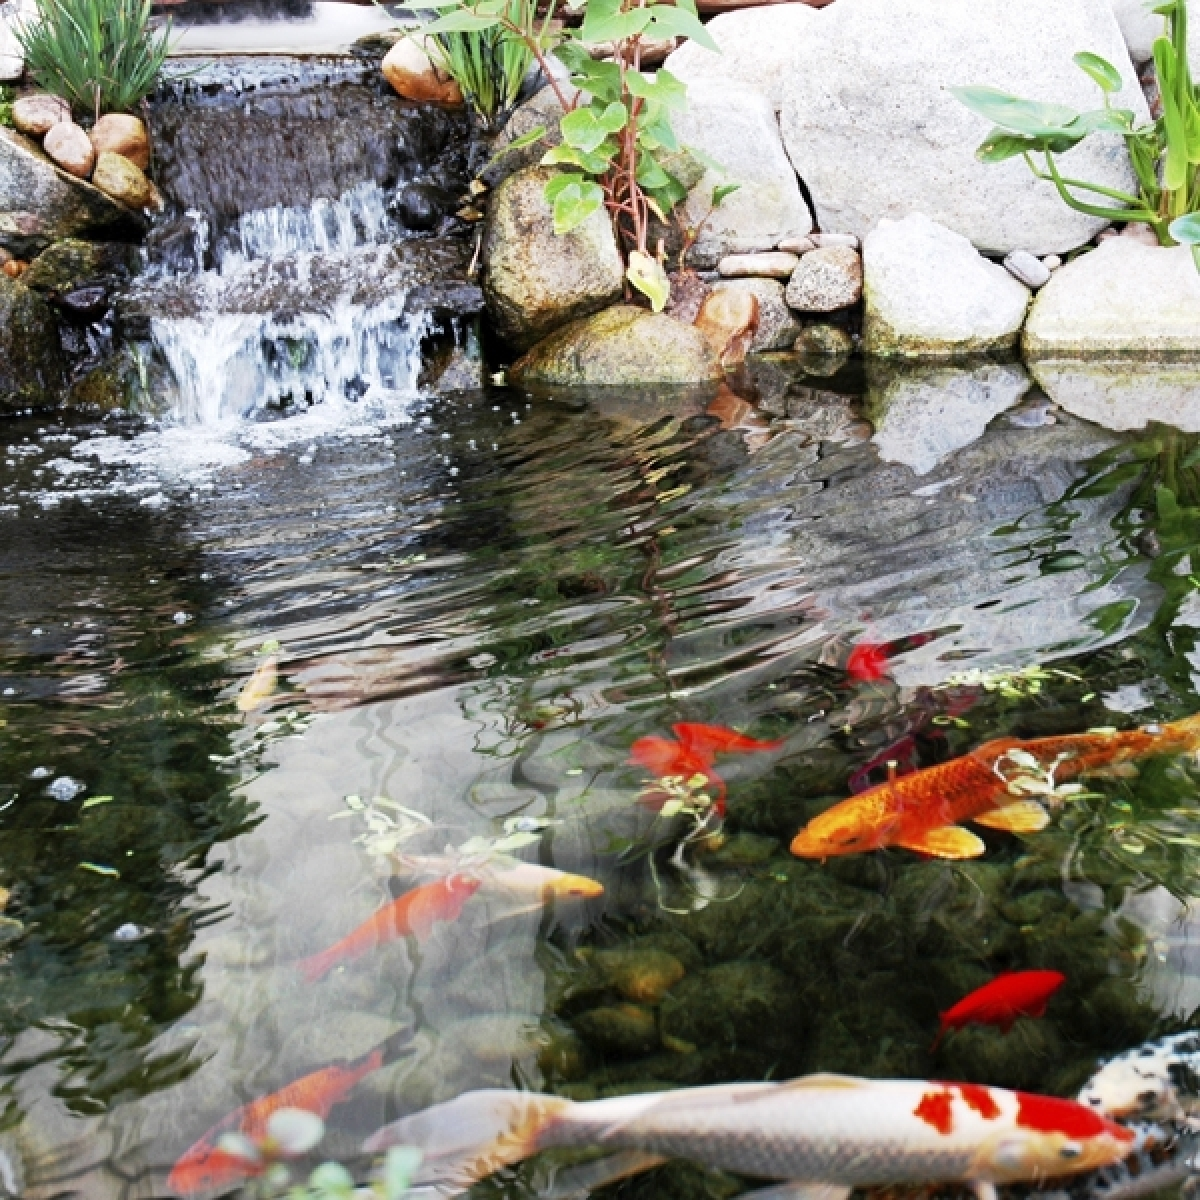 Fish in the pond dating site